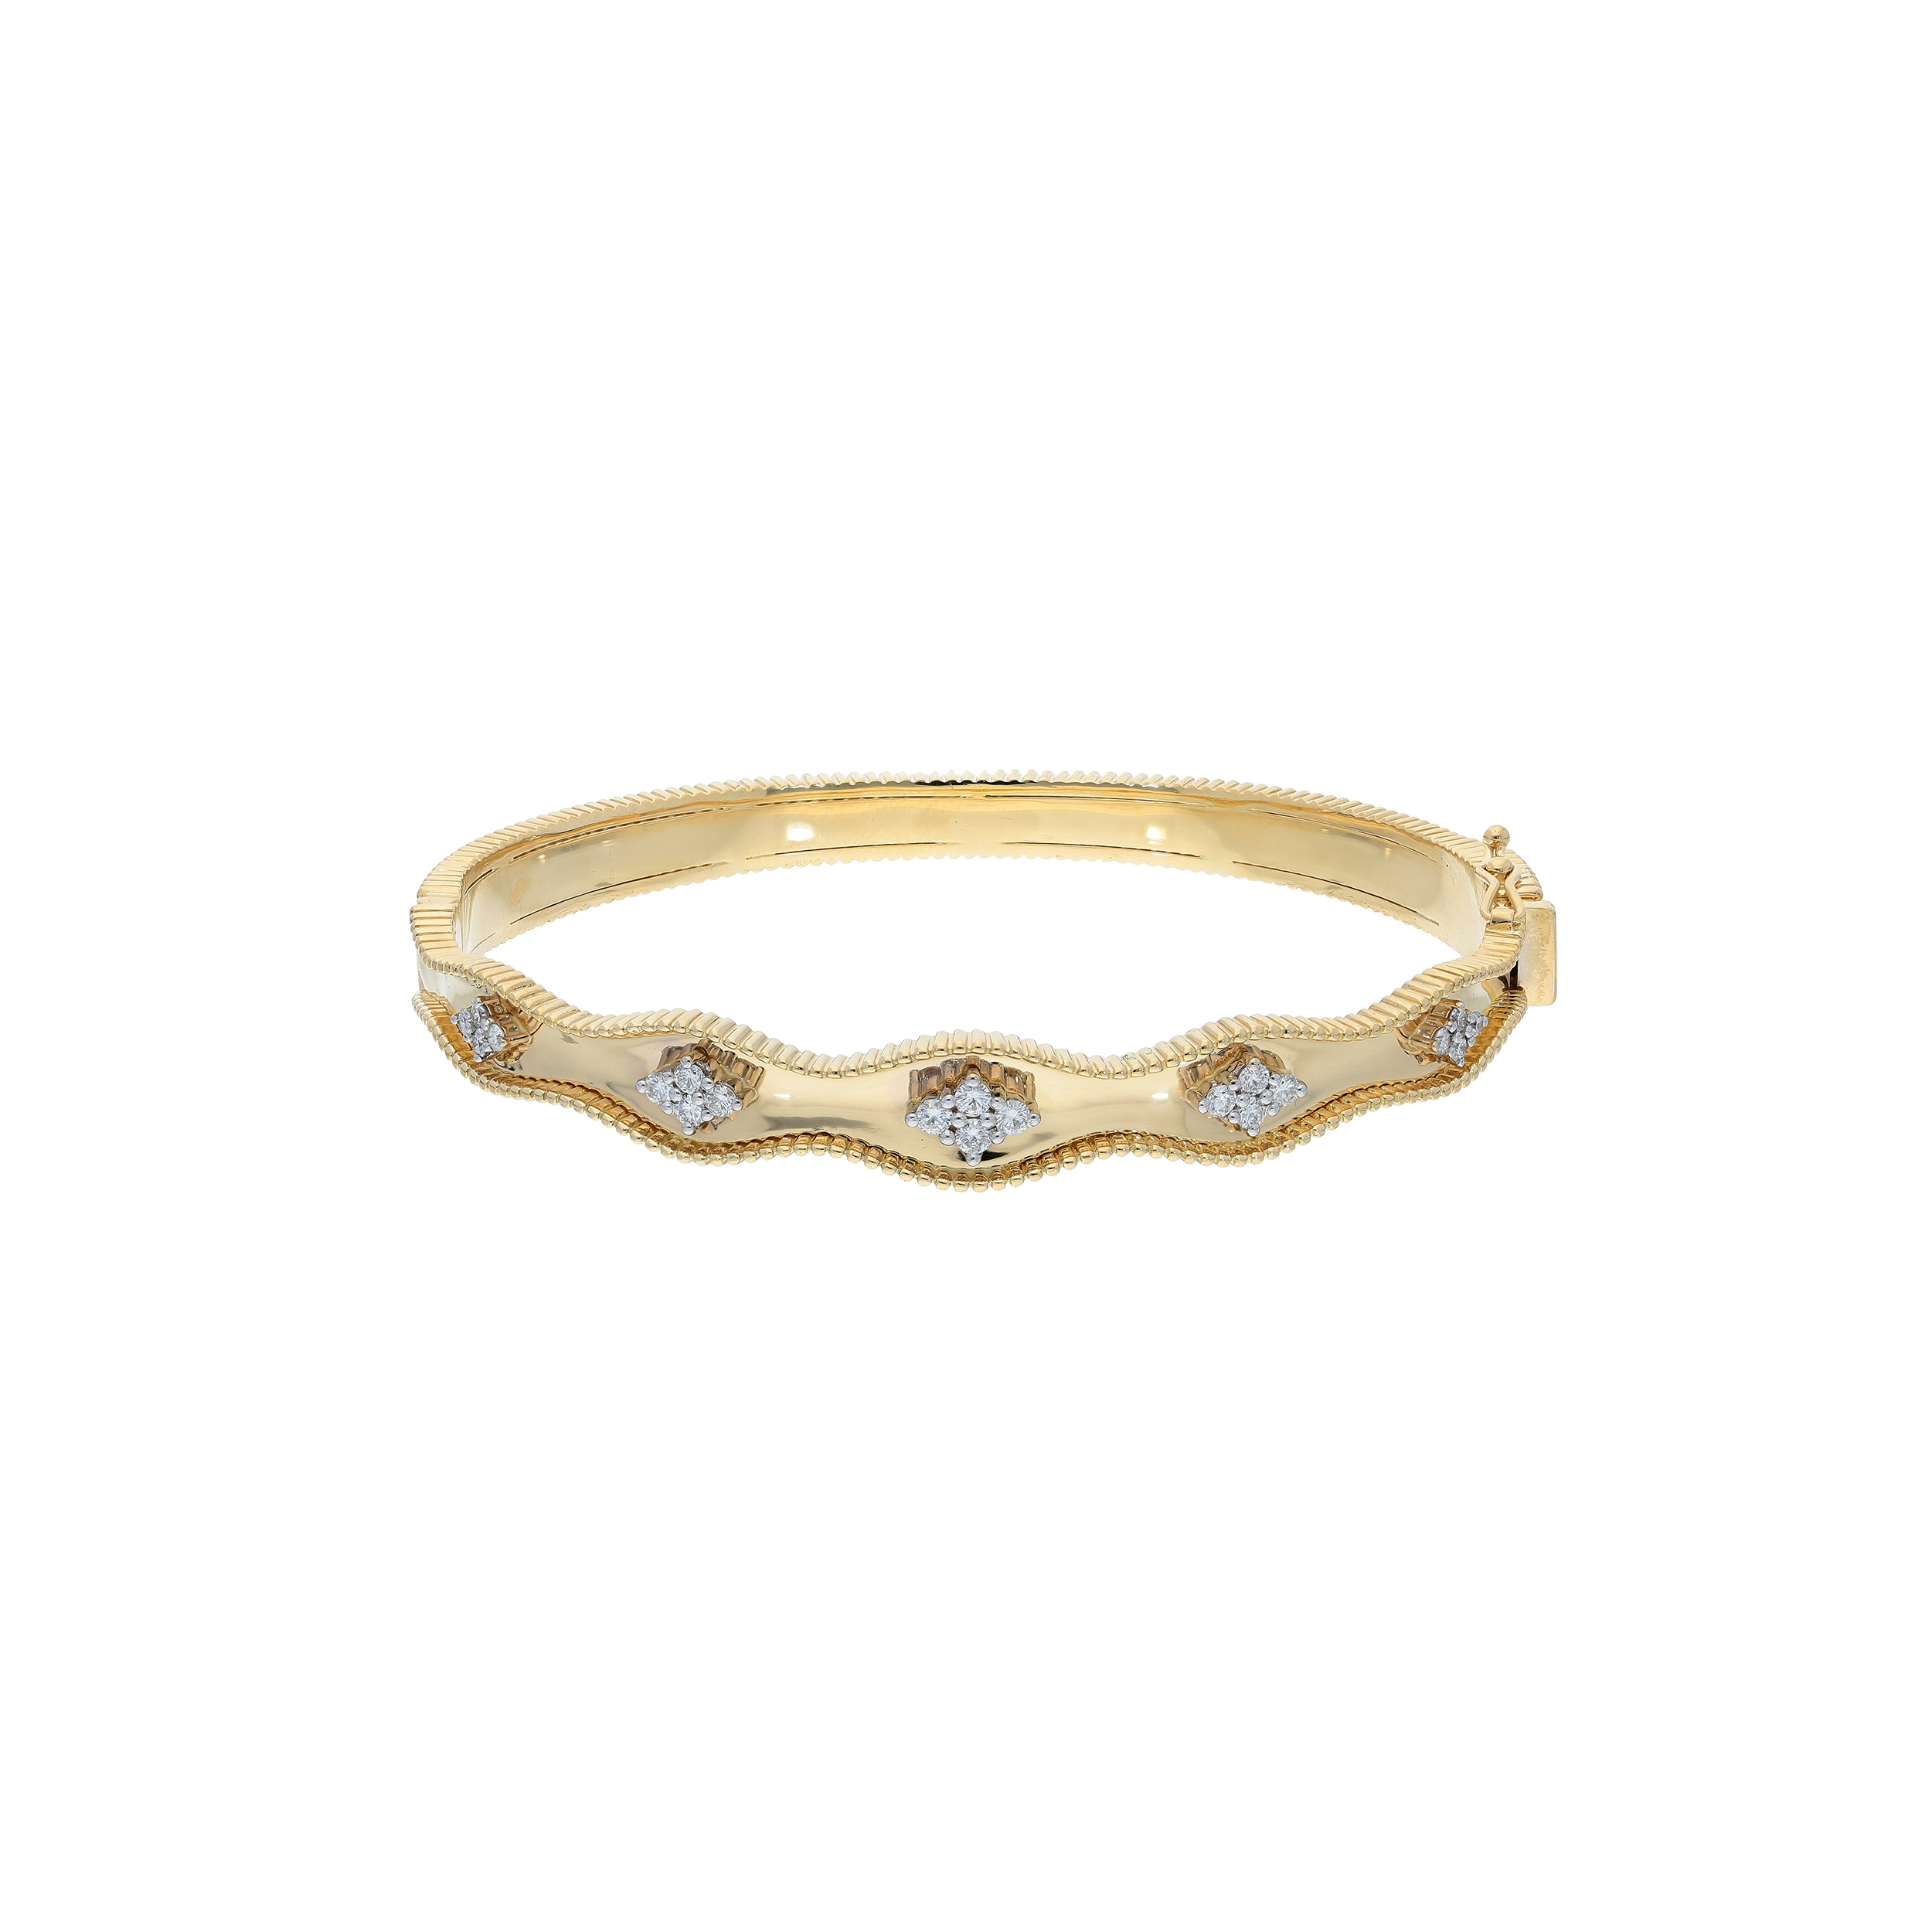 Bangle bracelet 18 kt yellow and white gold with diamonds